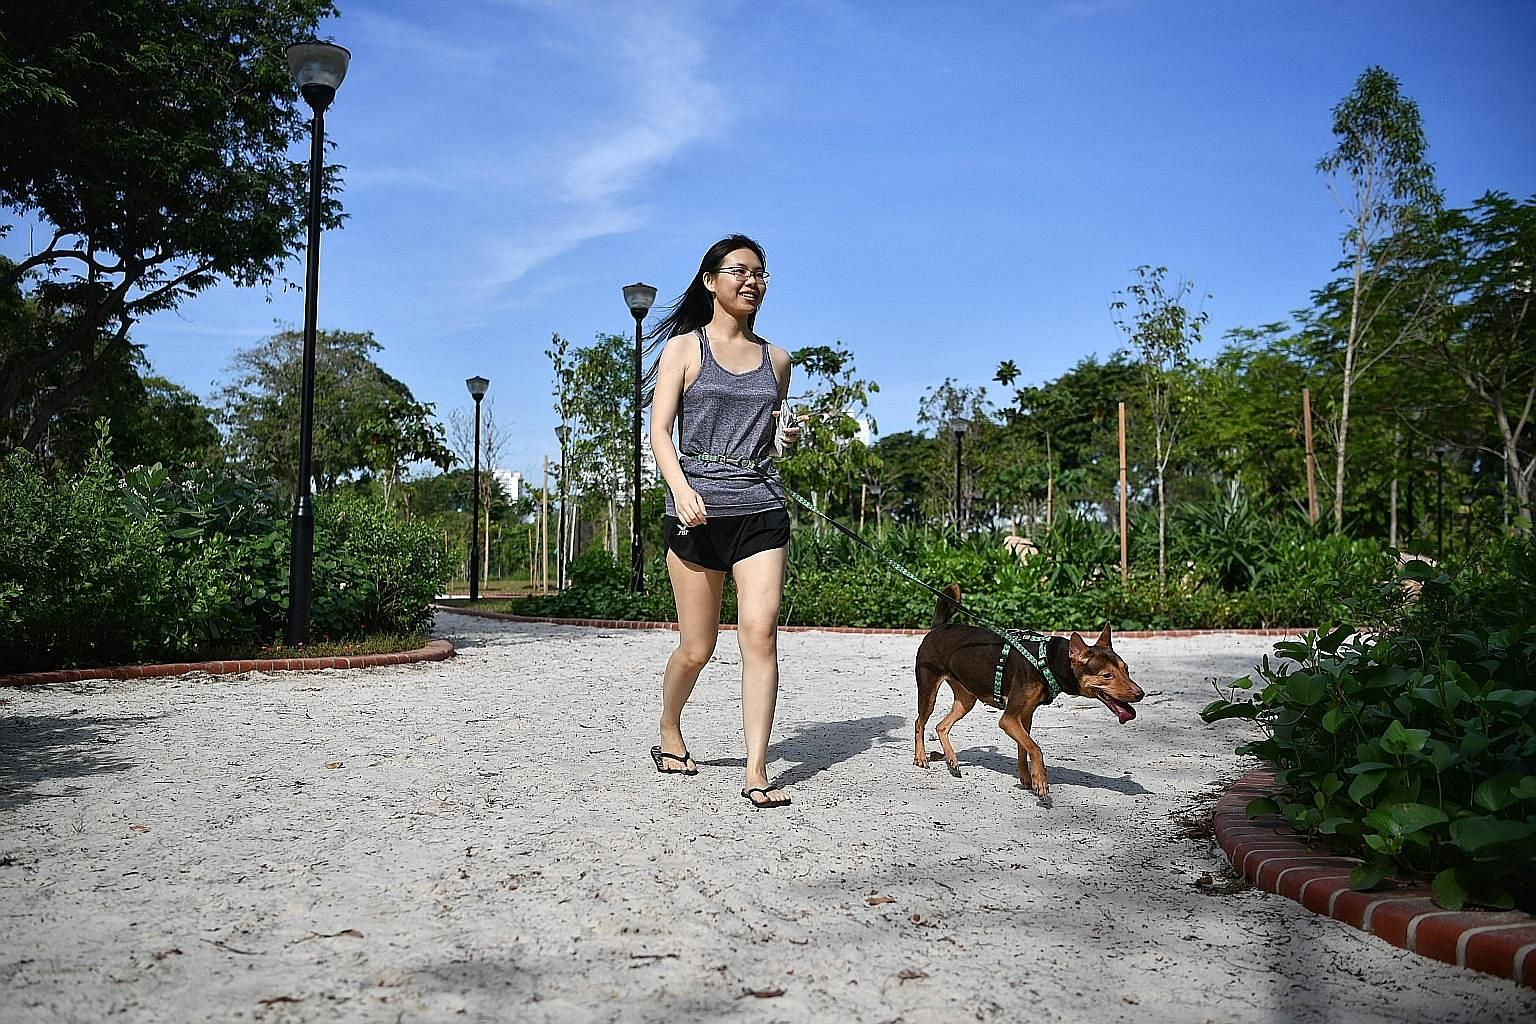 Walking one's dog can be a good workout for the owner as well as the pet. The Brandeis University study found that discounting physical exercise, even the least active participants were found to sleep better on some days when they took more steps. ST